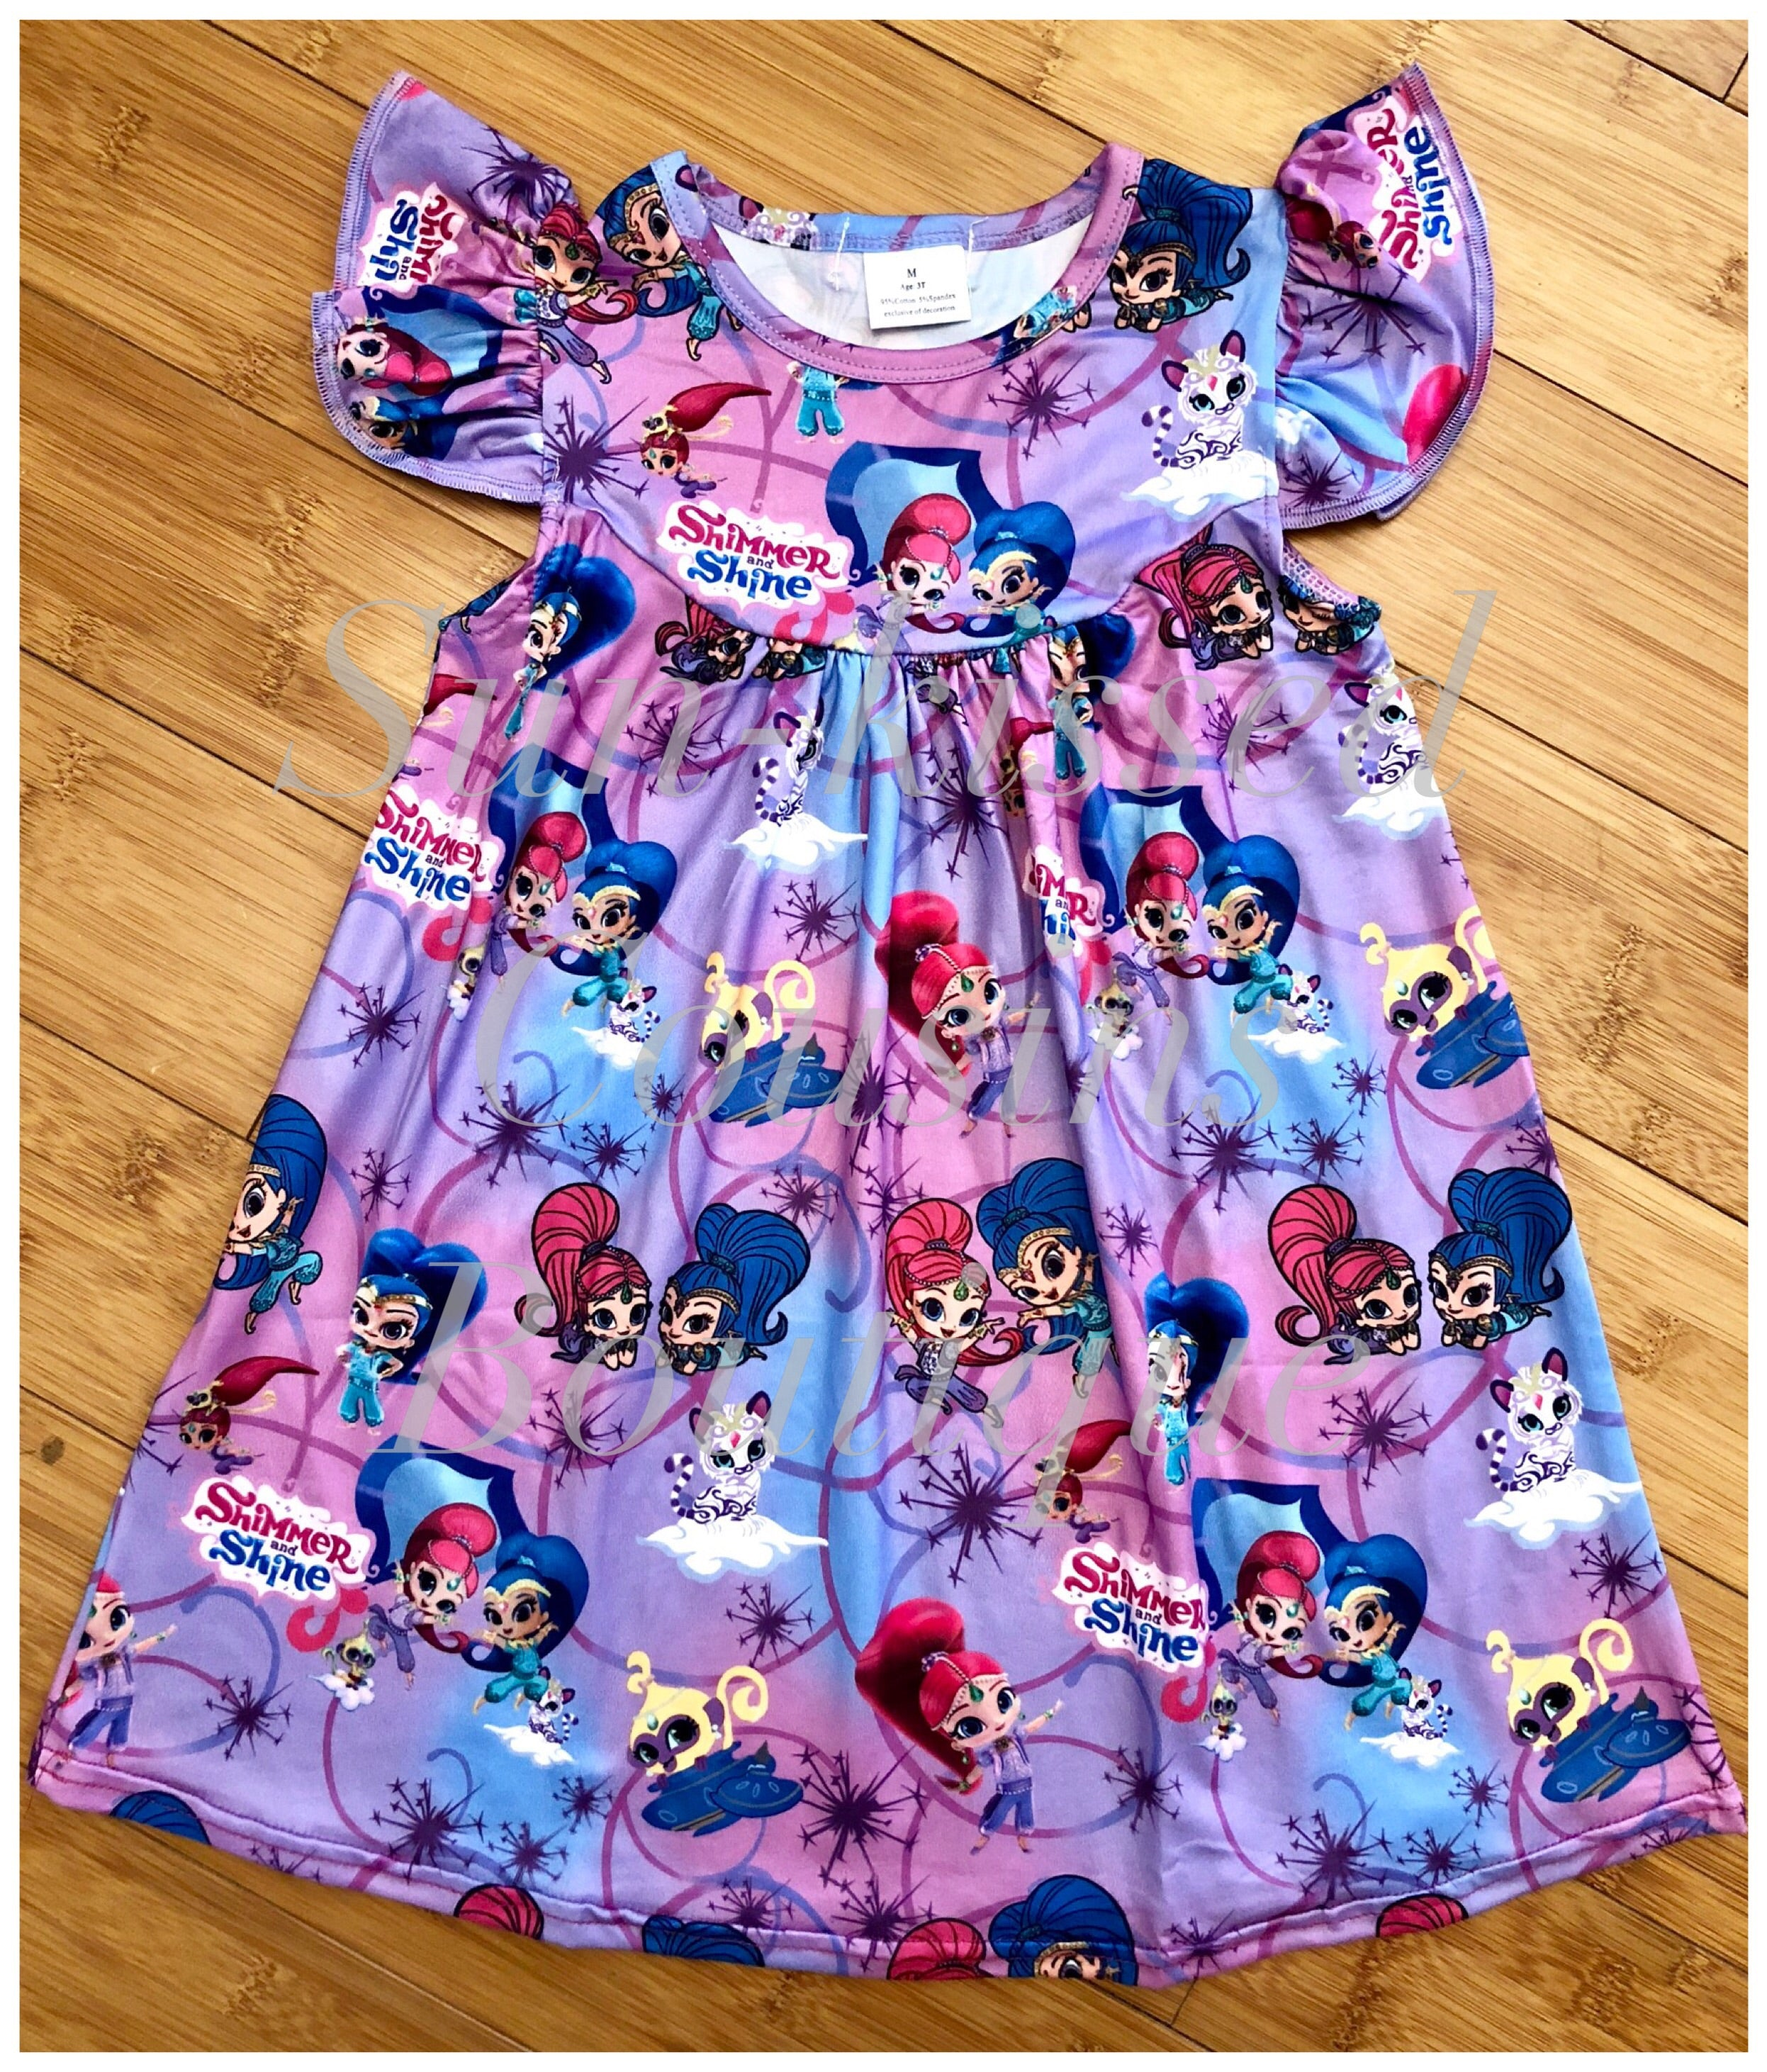 Shimmer and Shine Pearl Dress - sizes 6/12m, 12/18m, 2T